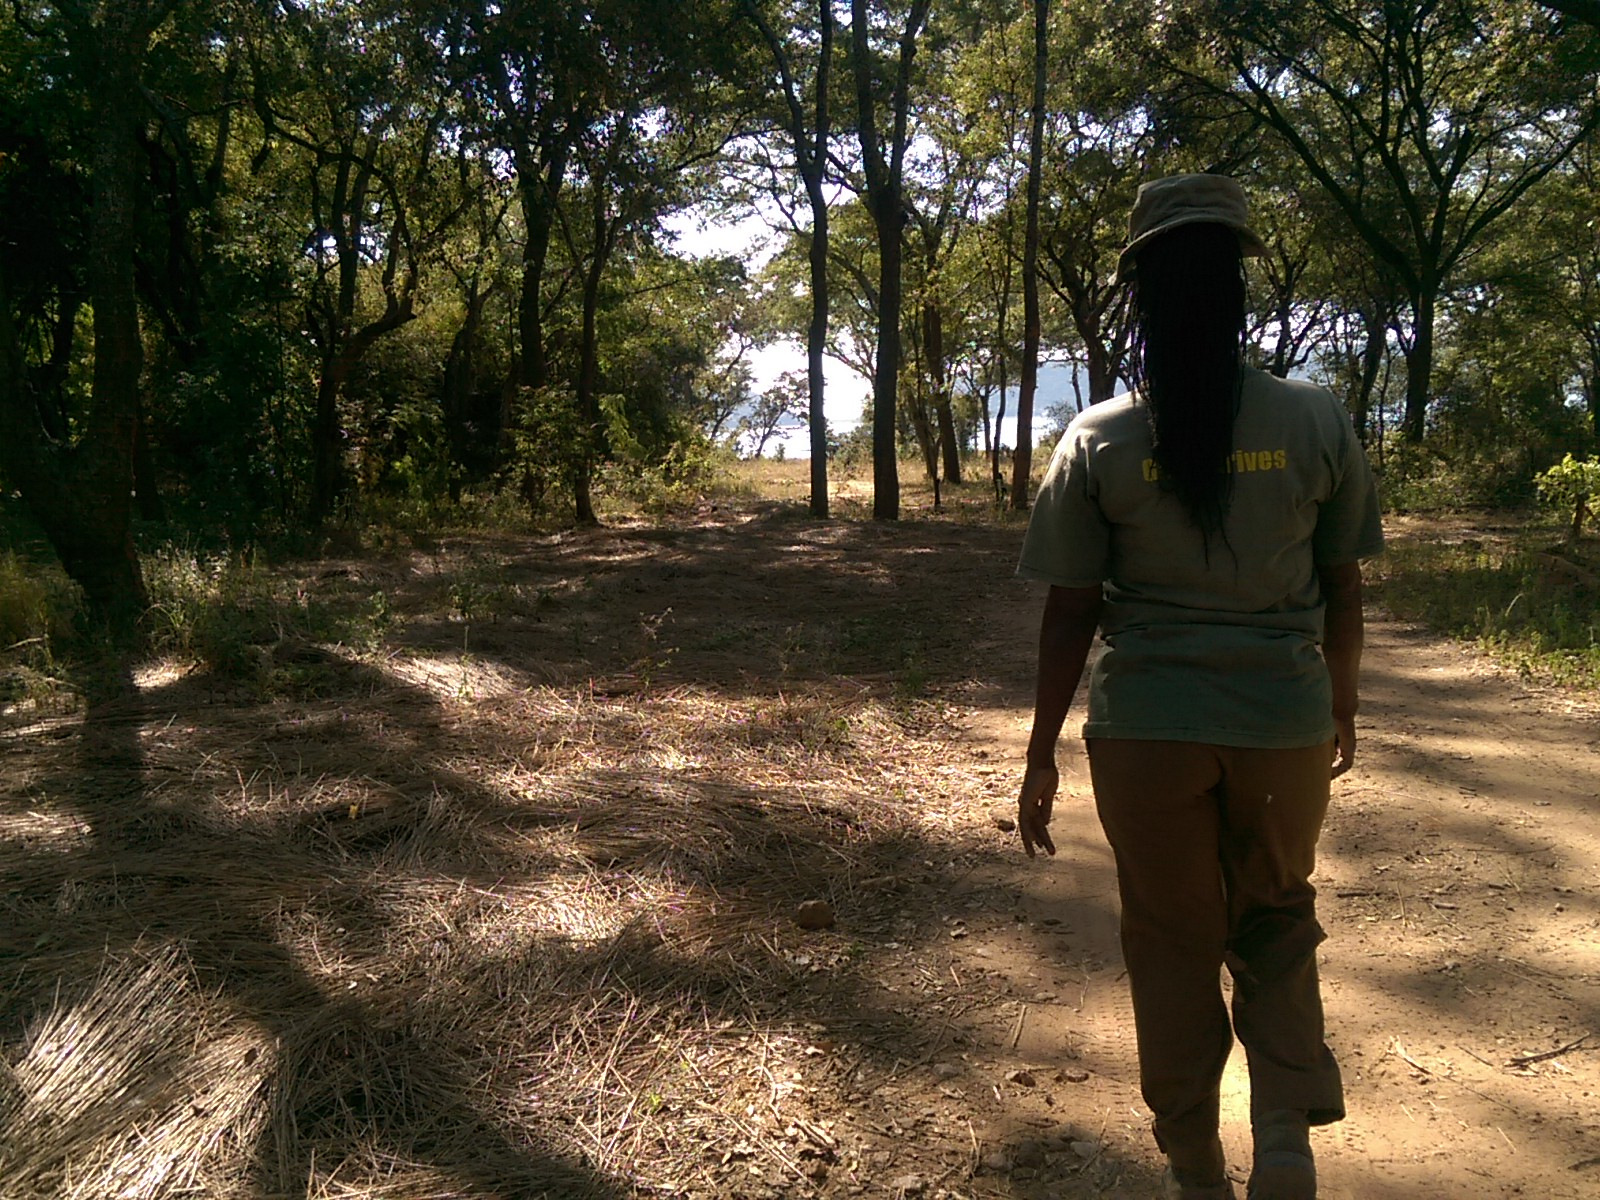 A black woman with dreads and a green hat walking along a dirt road surrounded by trees, from behind